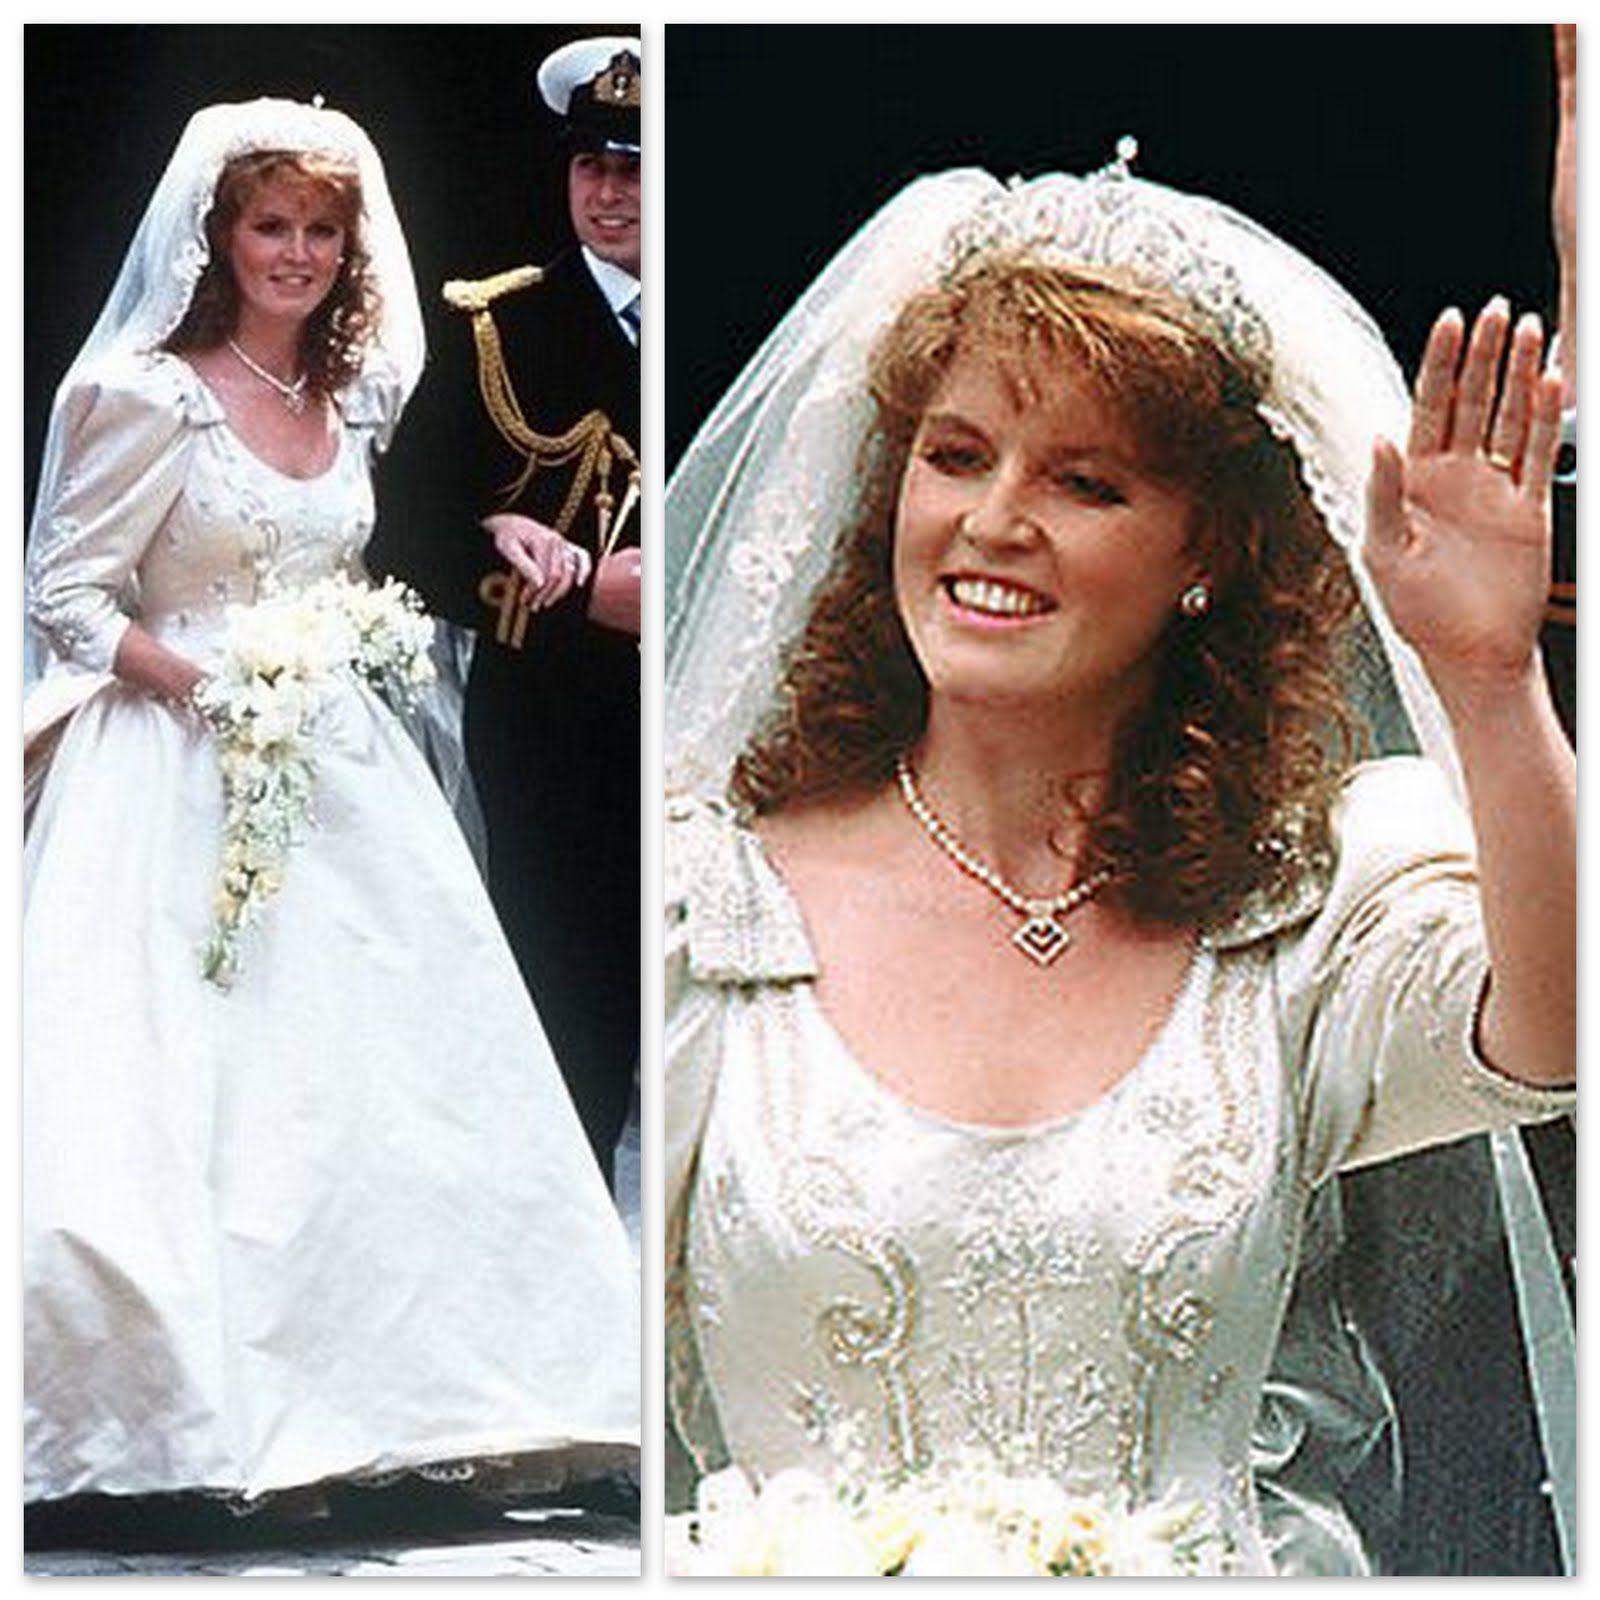 Sarah Ferguson, the former Duchess of York Wedding